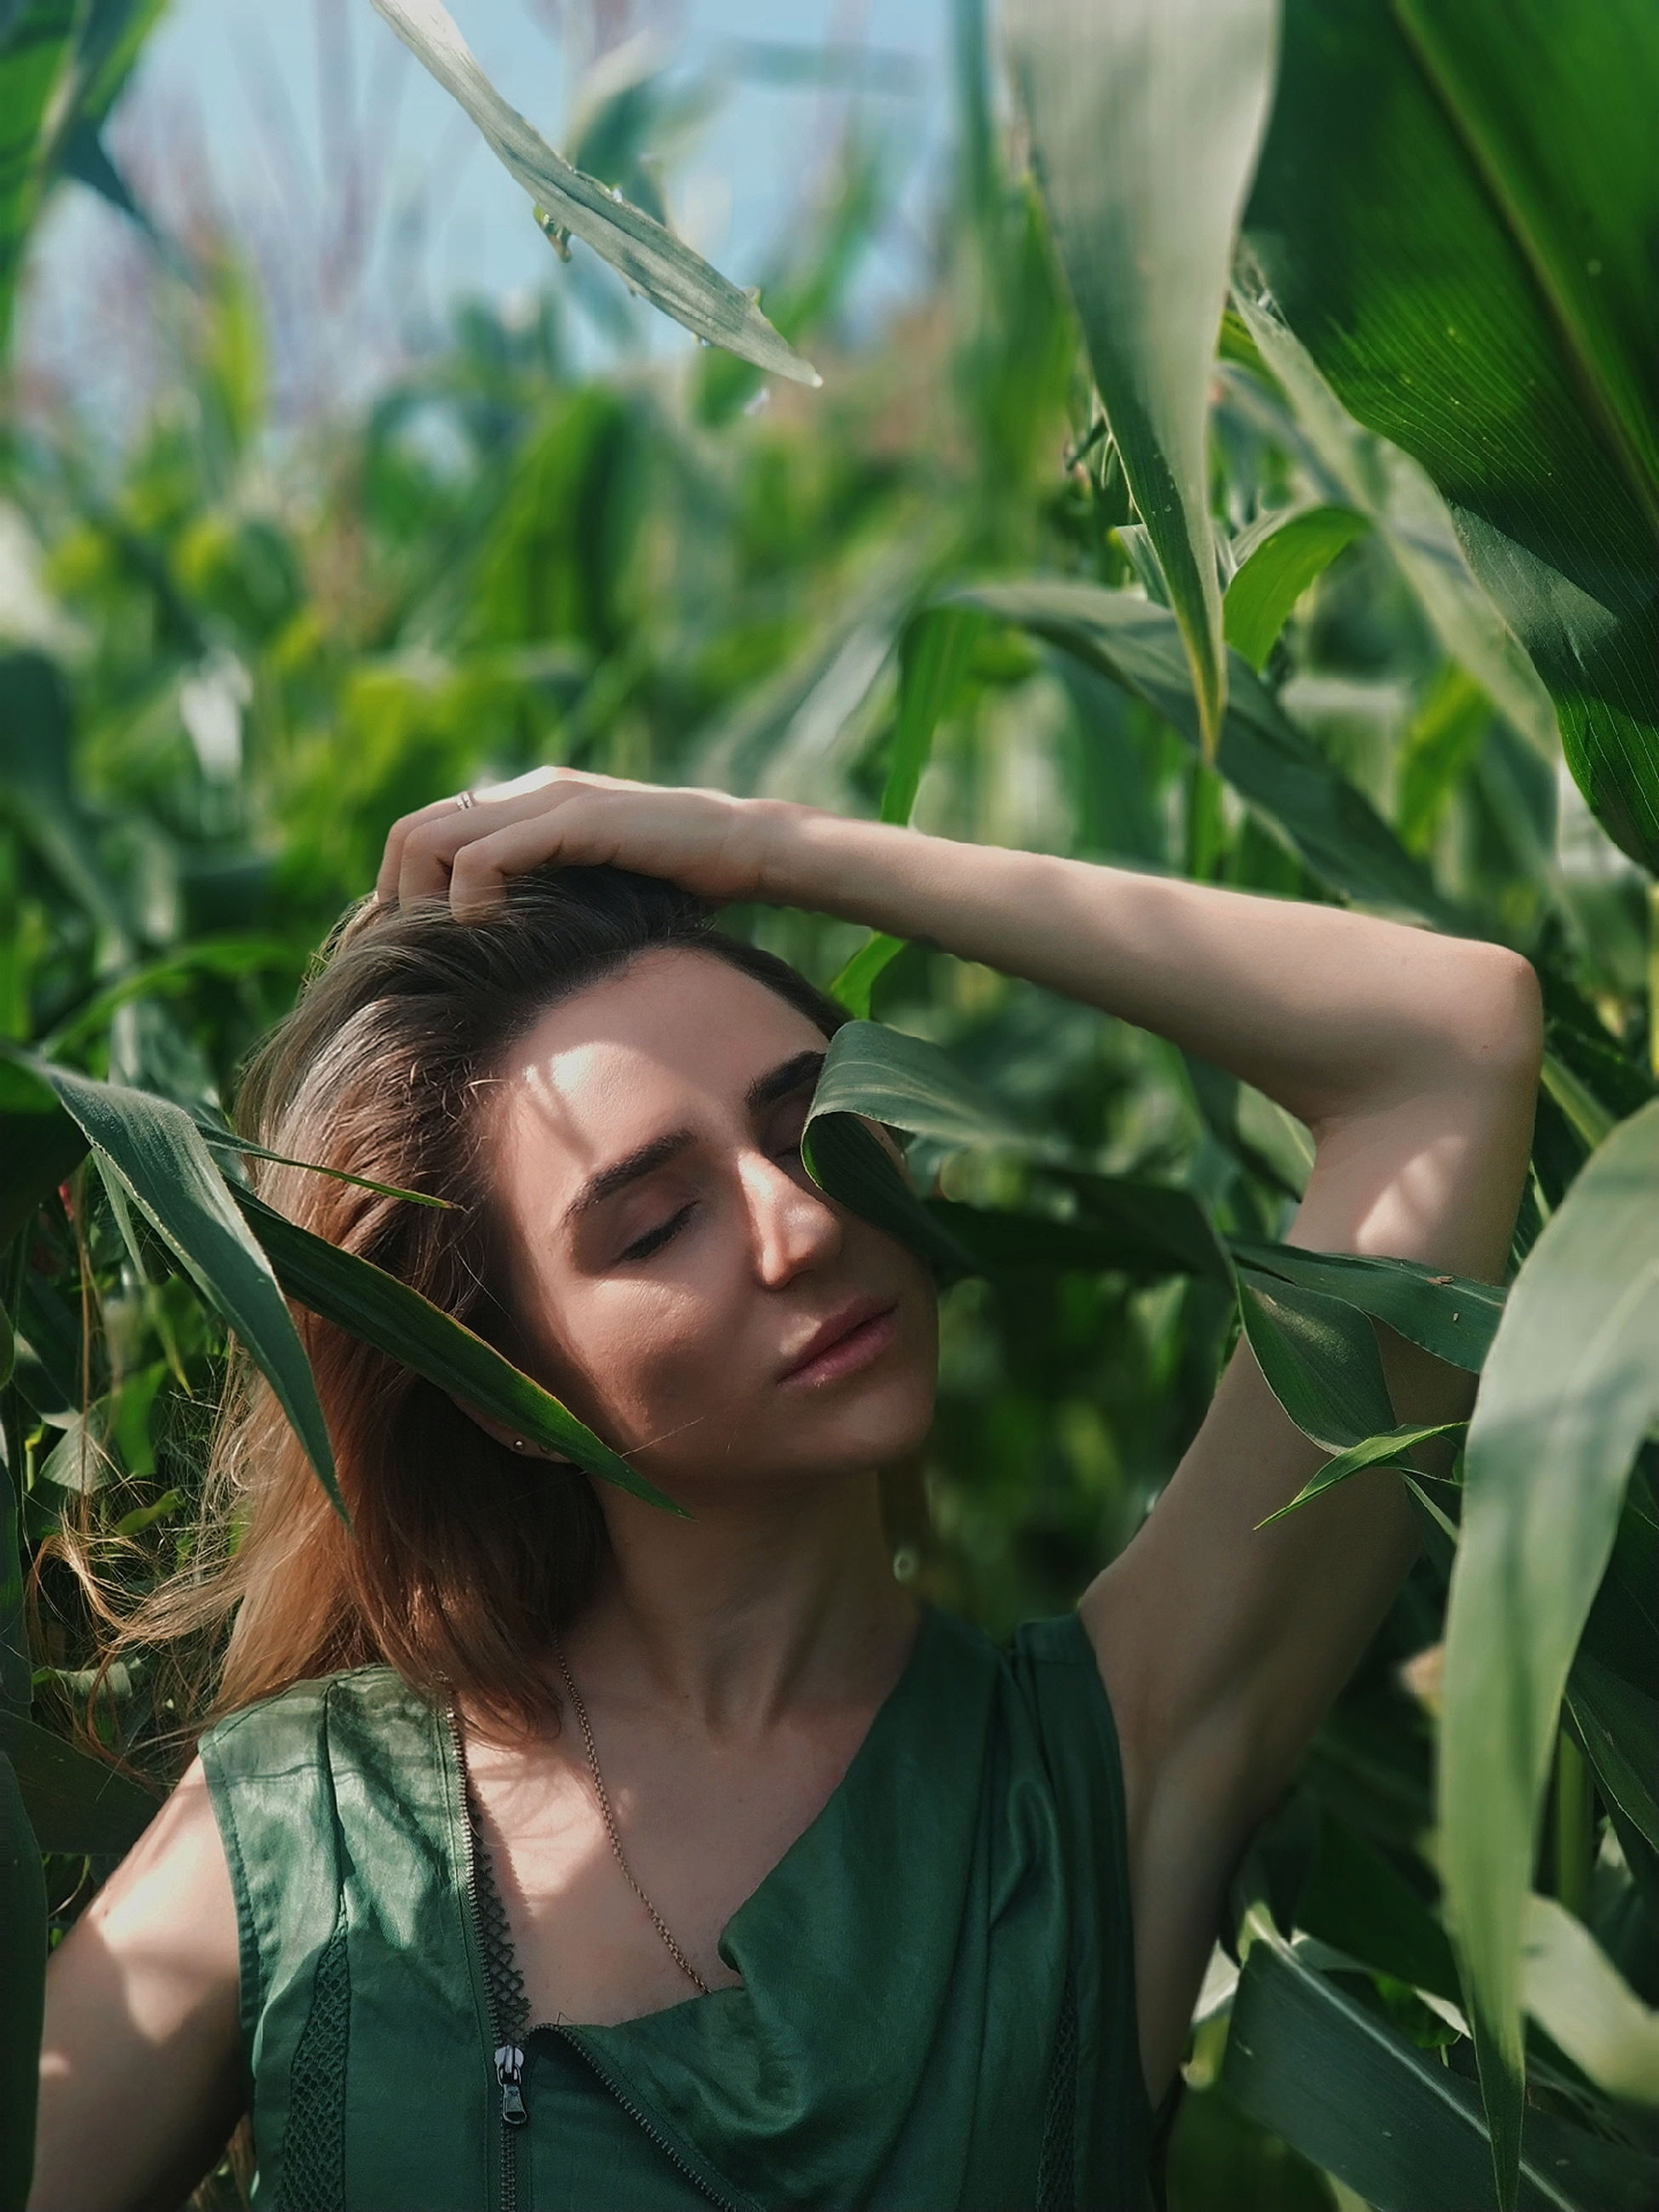 plant, one person, young adult, real people, young women, portrait, growth, leaf, green color, leisure activity, plant part, lifestyles, nature, headshot, front view, day, women, agriculture, outdoors, hairstyle, beautiful woman